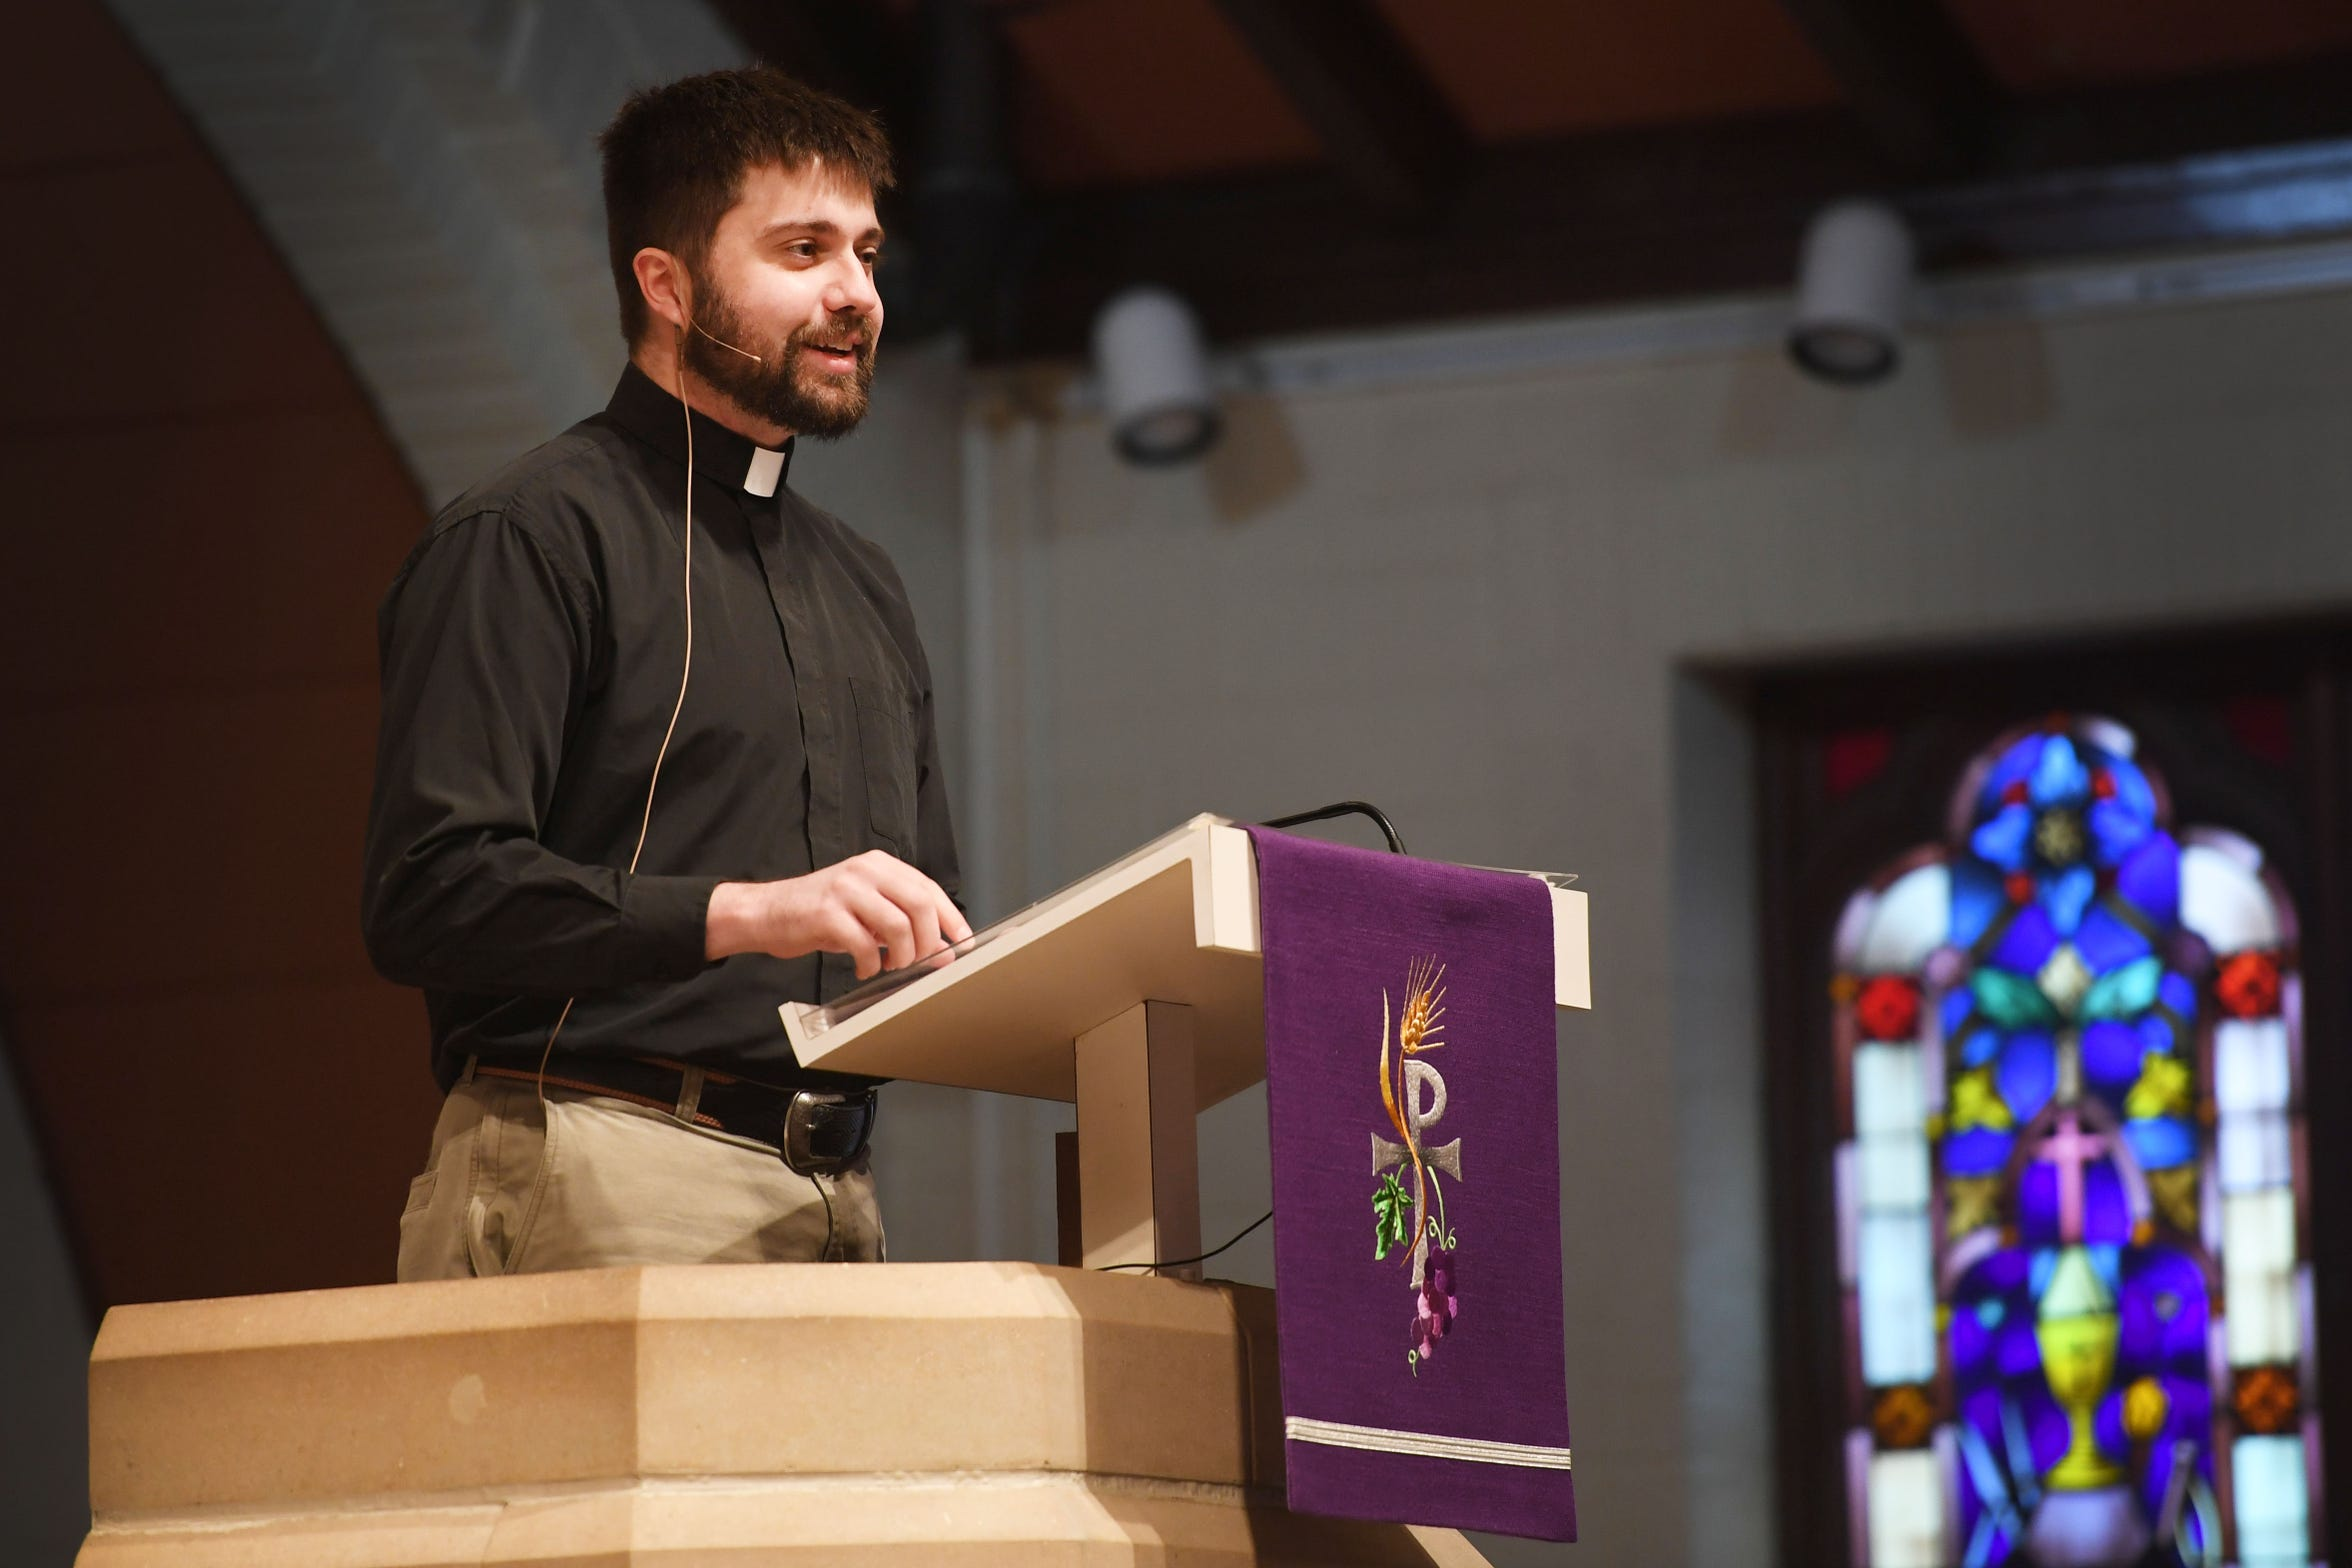 Pastor Josh Johnson gives the sermon during the noon service at East Side Lutheran Church Wednesday, April 10,  in Sioux Falls.